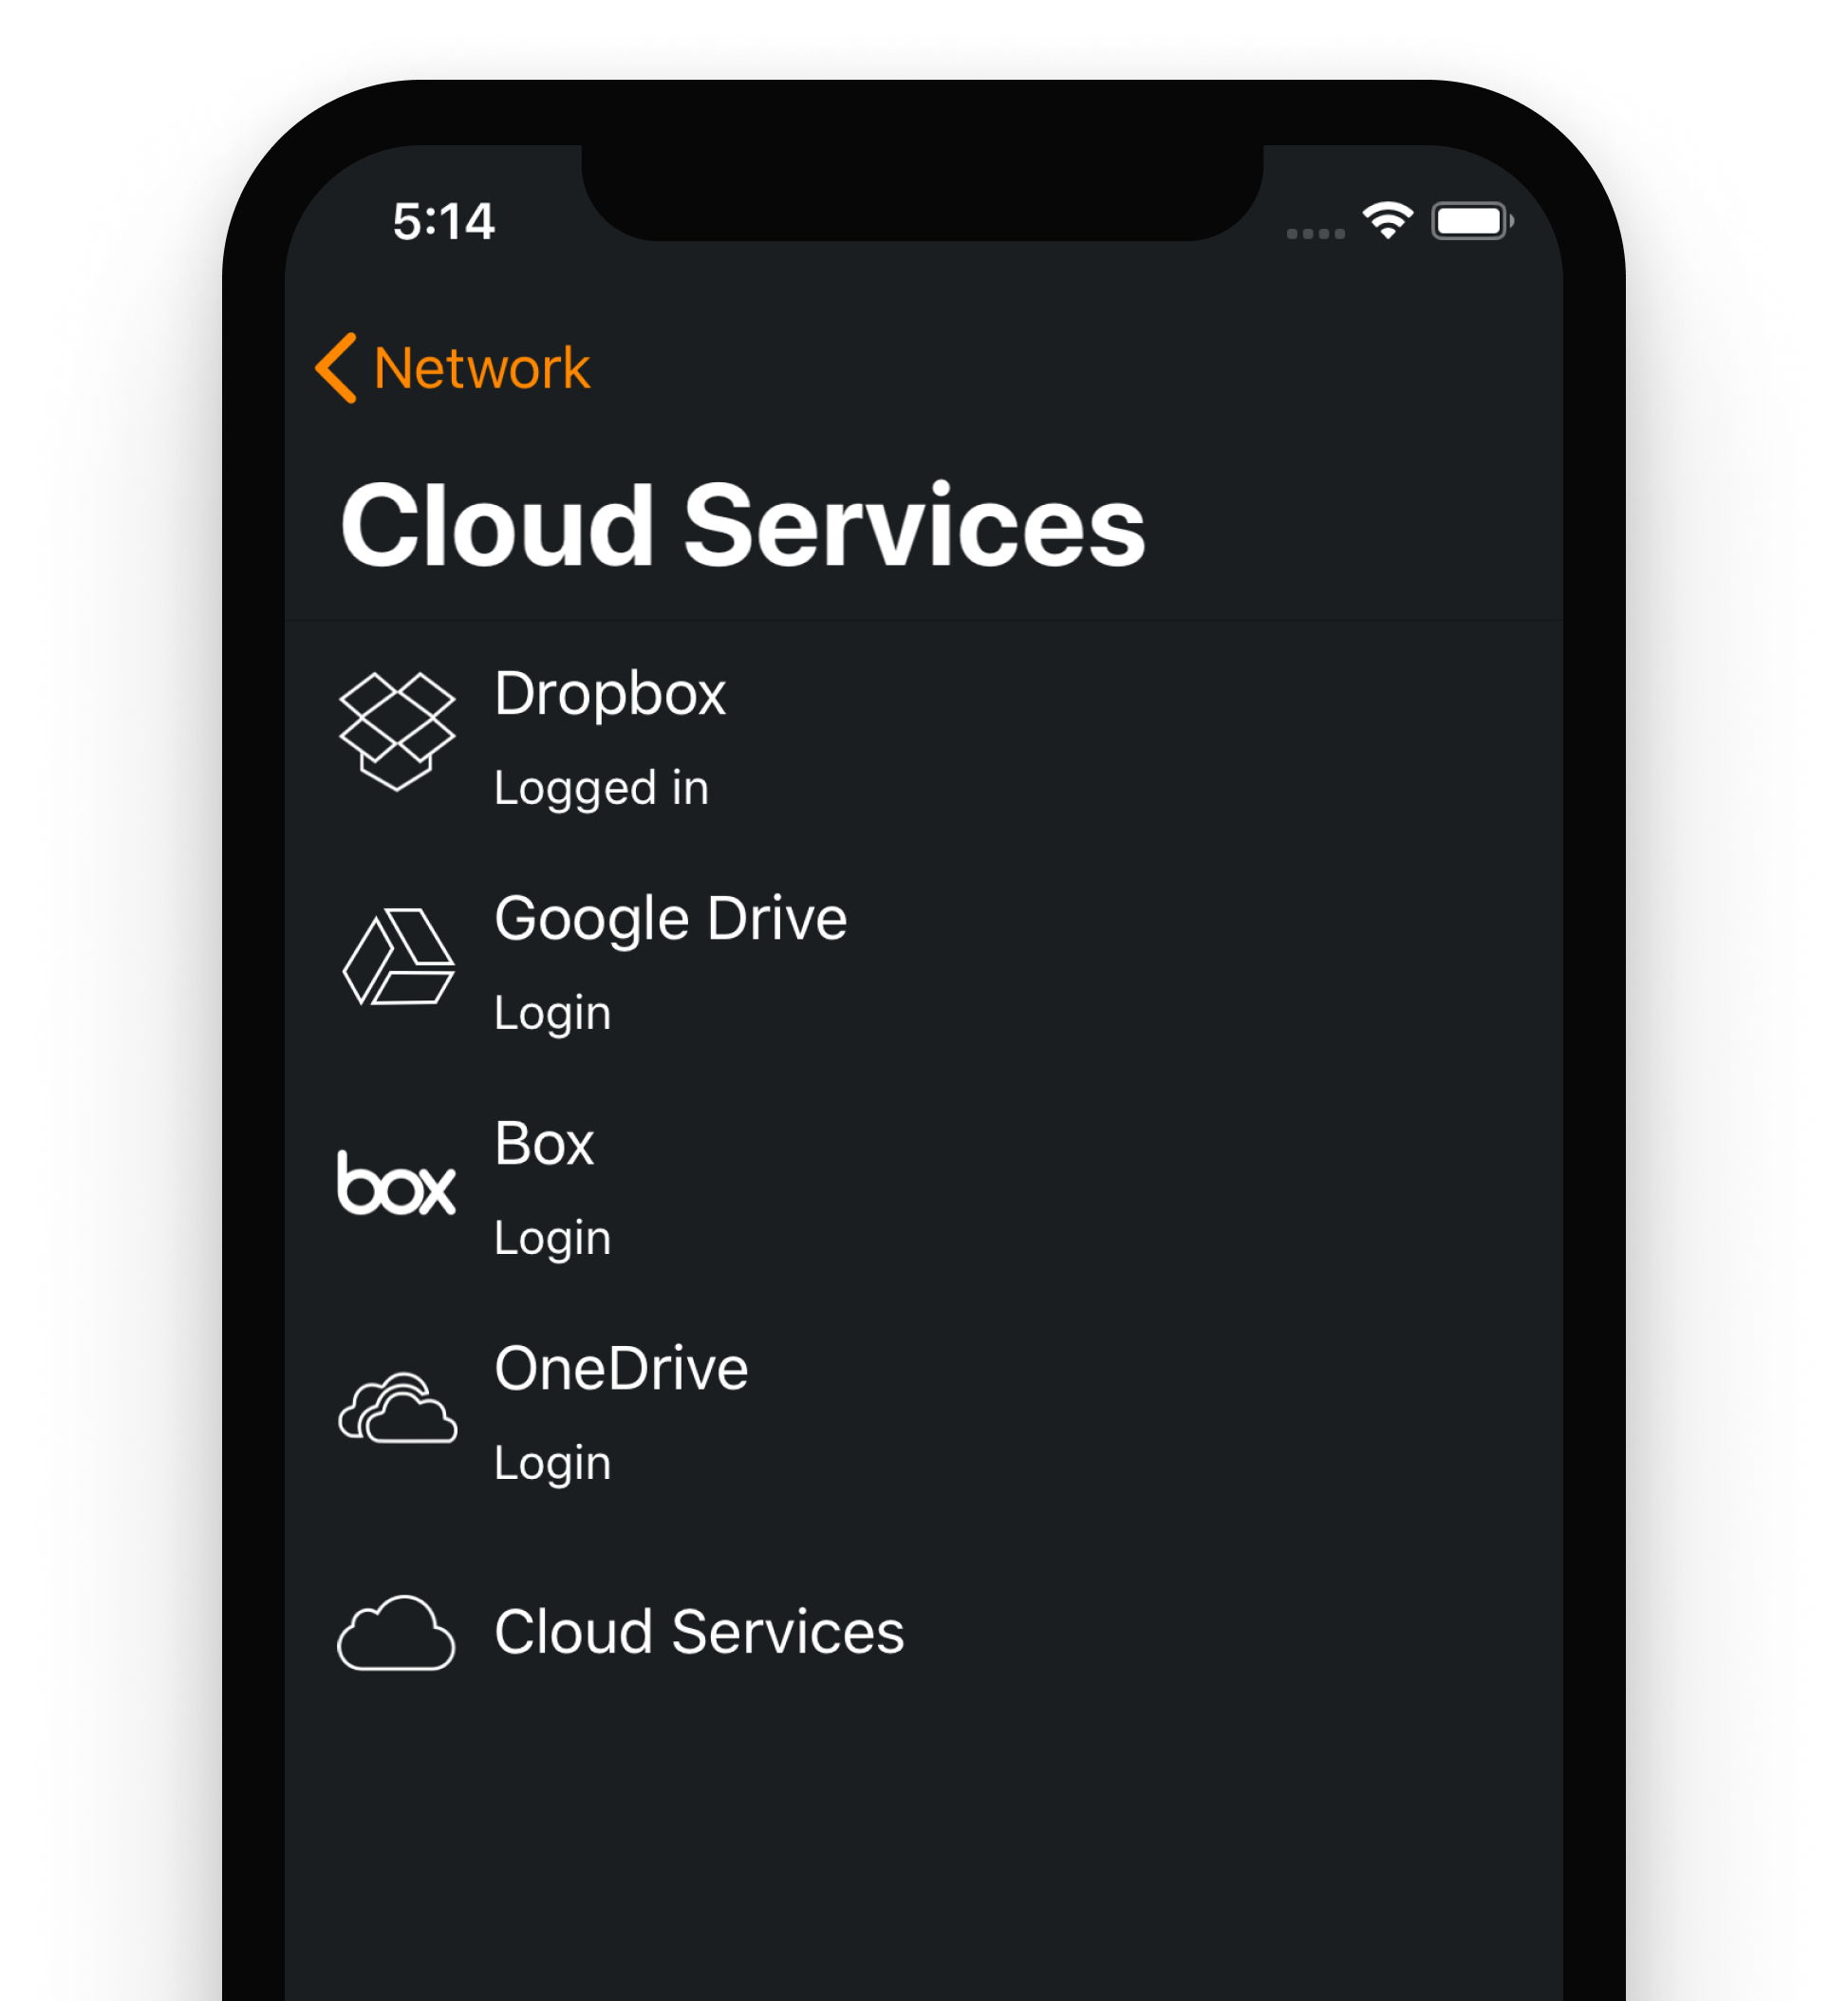 vlc-ios/Images.xcassets/FirstSteps/Cloud/blackCloudiPhone.imageset/Black@3x.png